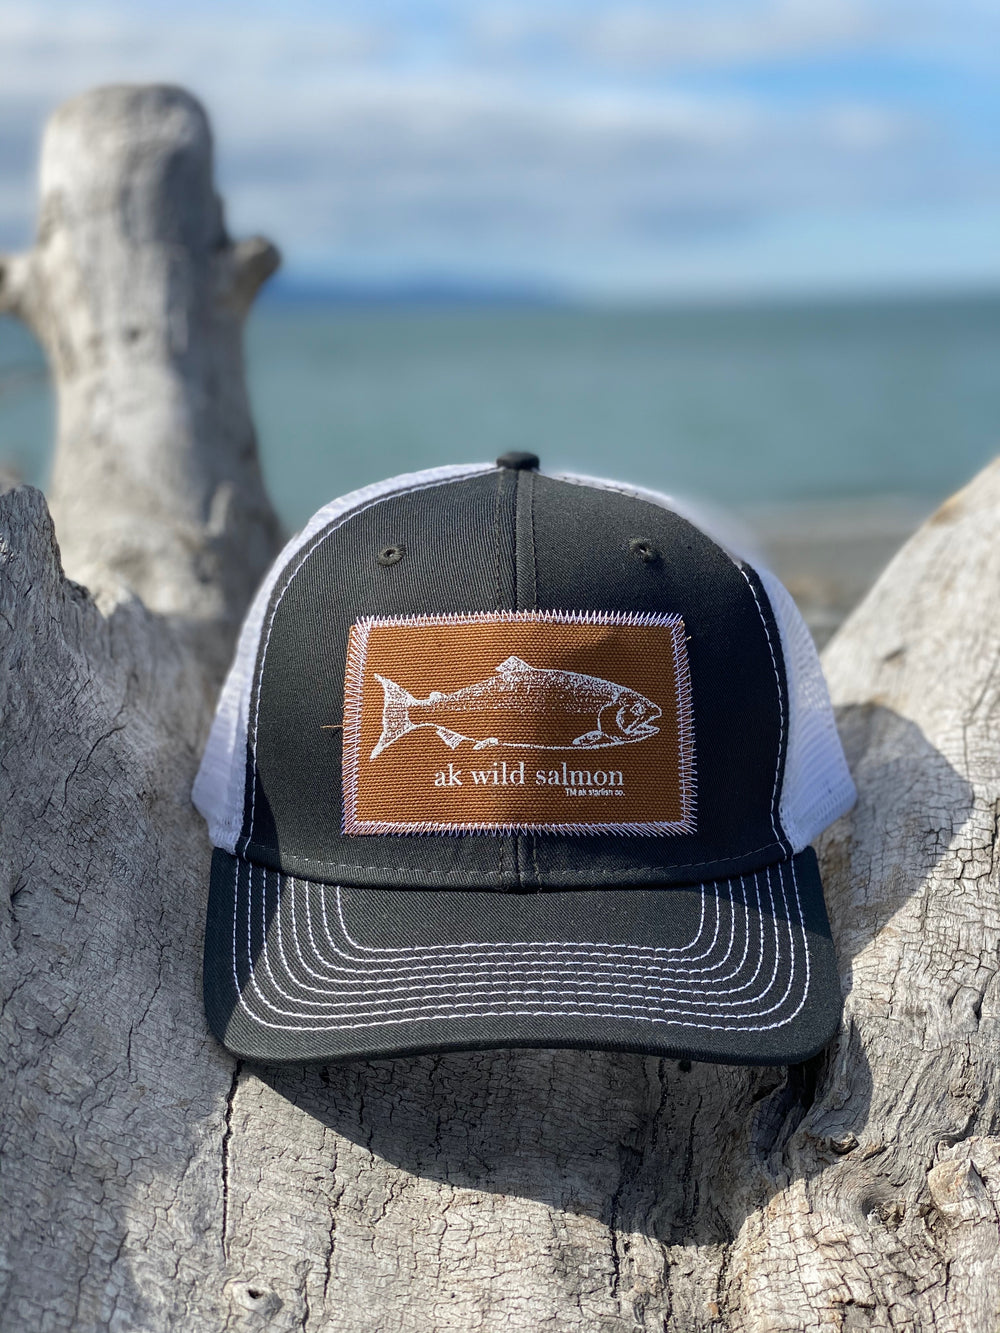 Campfire AK Wild Salmon Patch Hat $35.00